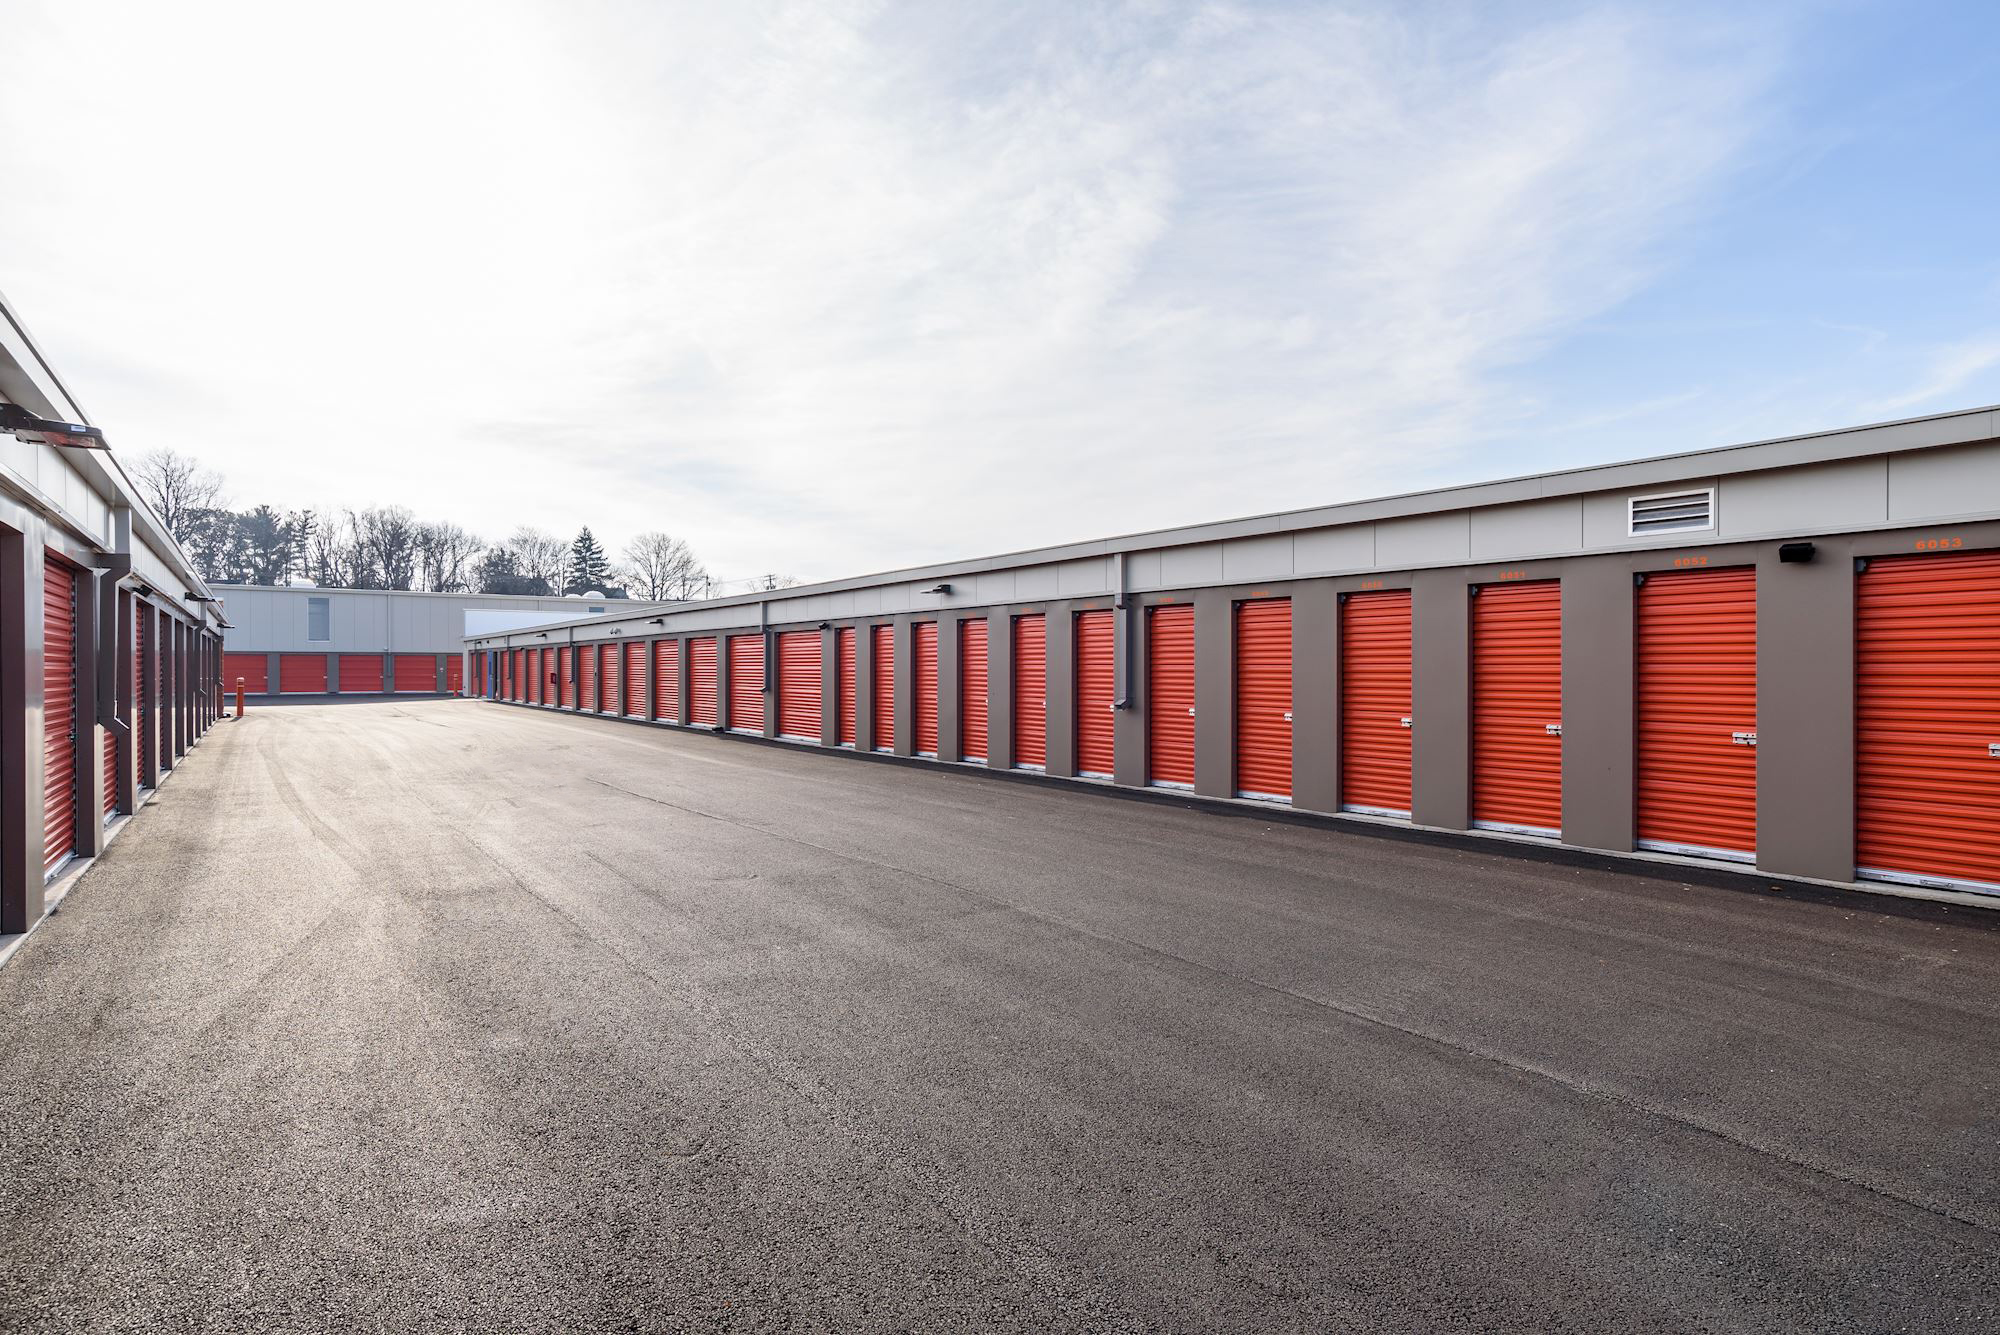 YourSpace Storage at Nottingham - Self Storage Near White Marsh, Perry Hall, & Nottingham